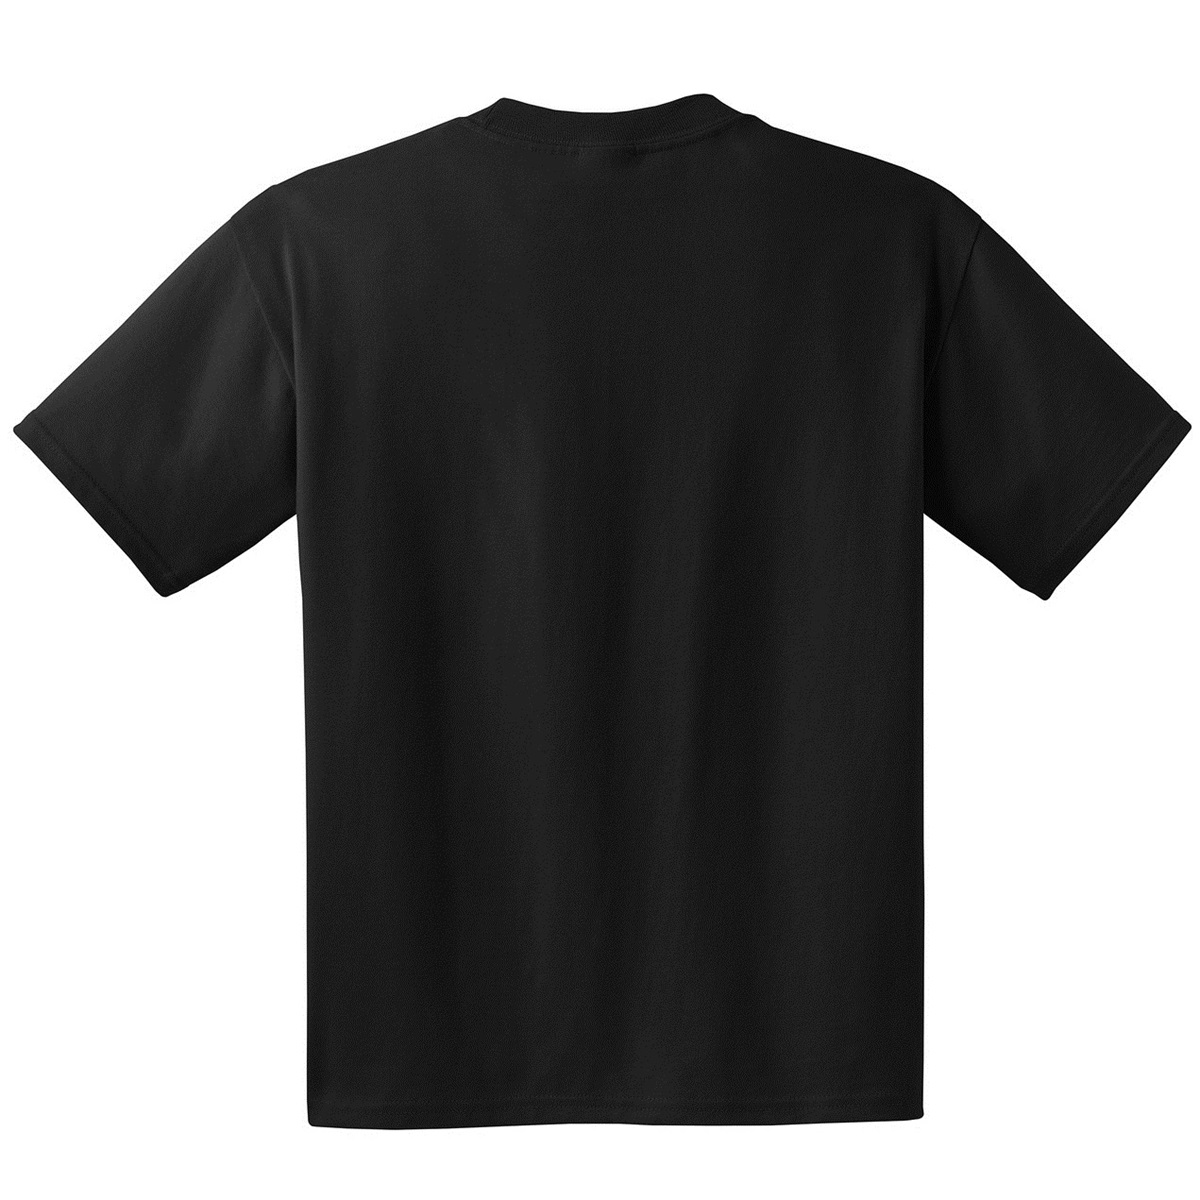 Hanes 5190 Beefy T Cotton T Shirt With Pocket Black